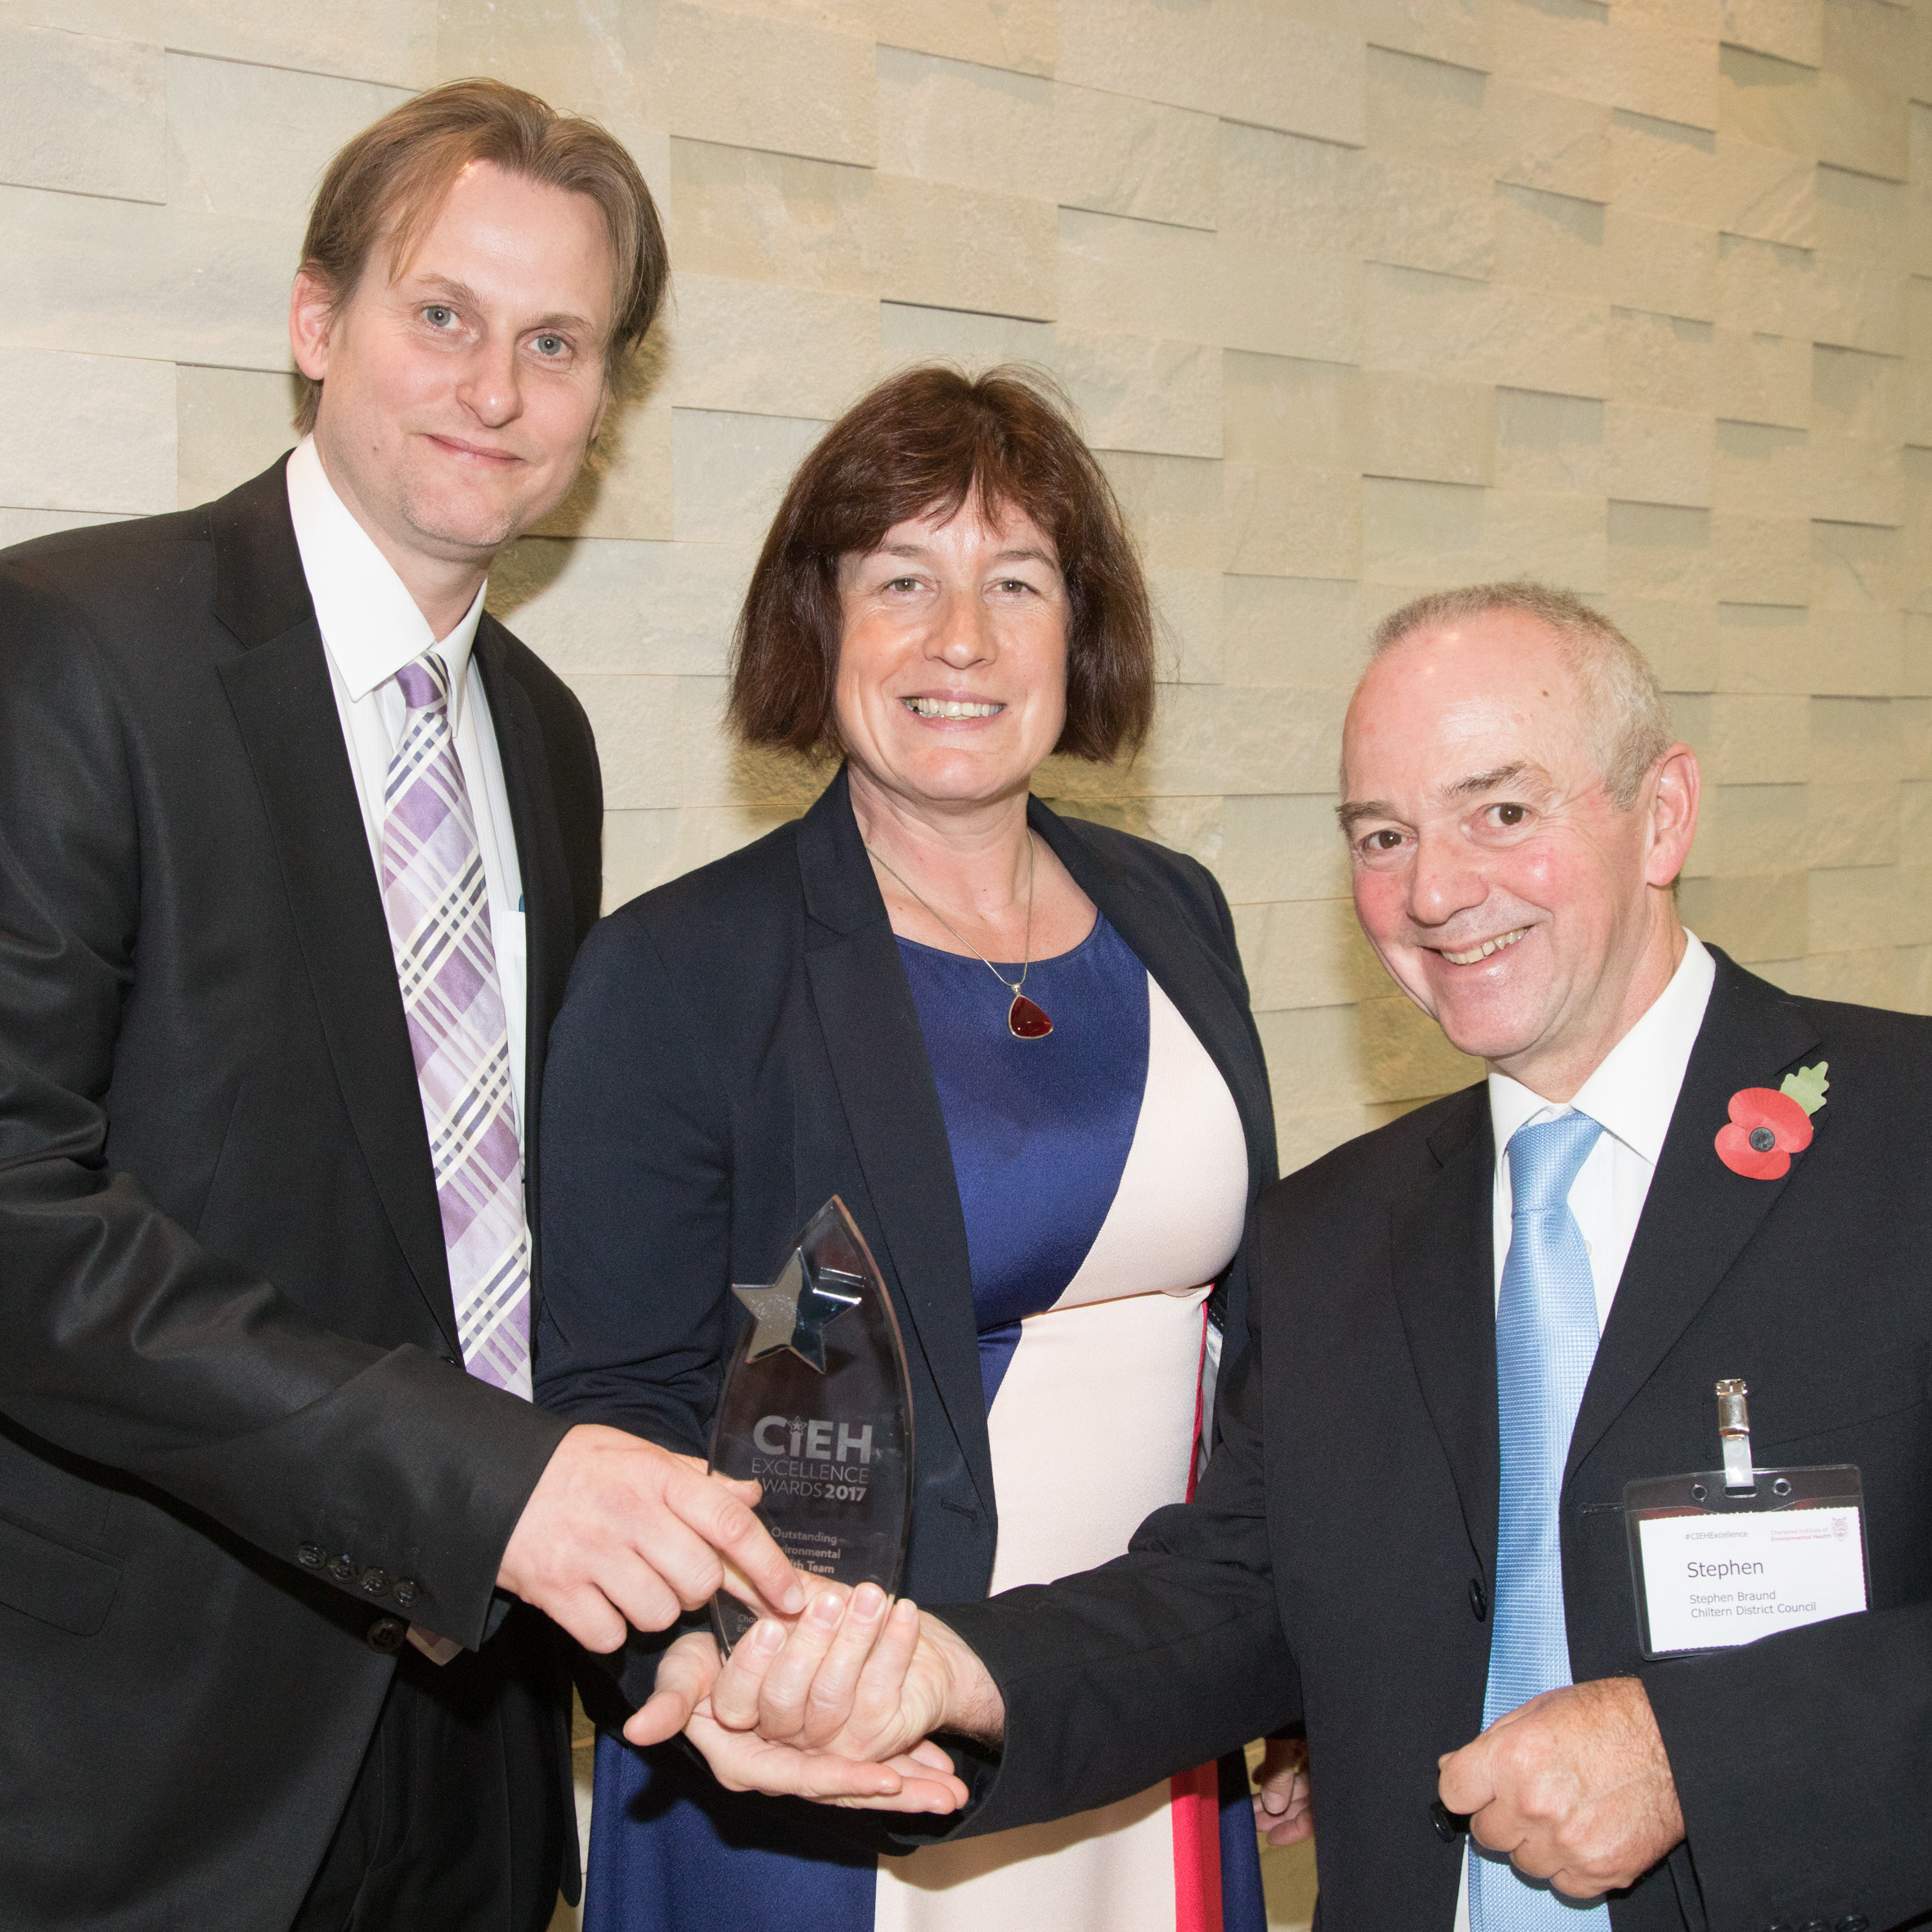 CIEH Excellence Awards winners hold trophy